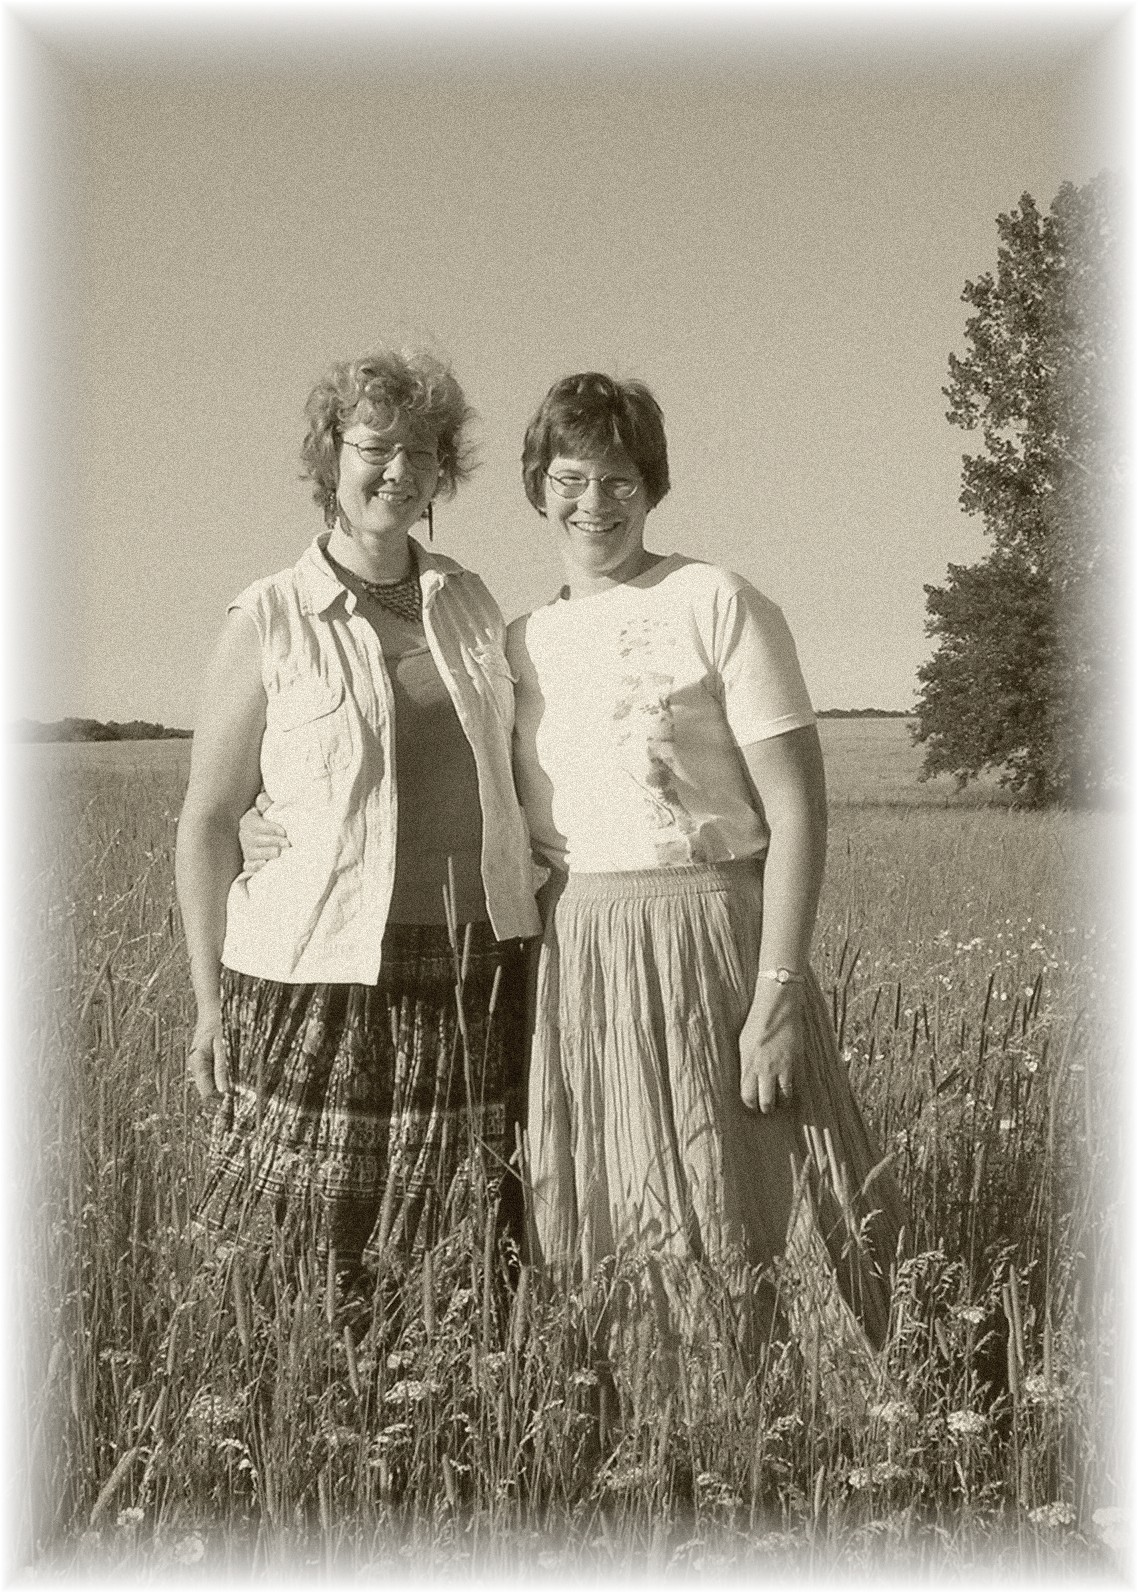 Hilda Demuth-Lutze and Emily Demuth Ishida standing in the pasture of the McEachron homestead.